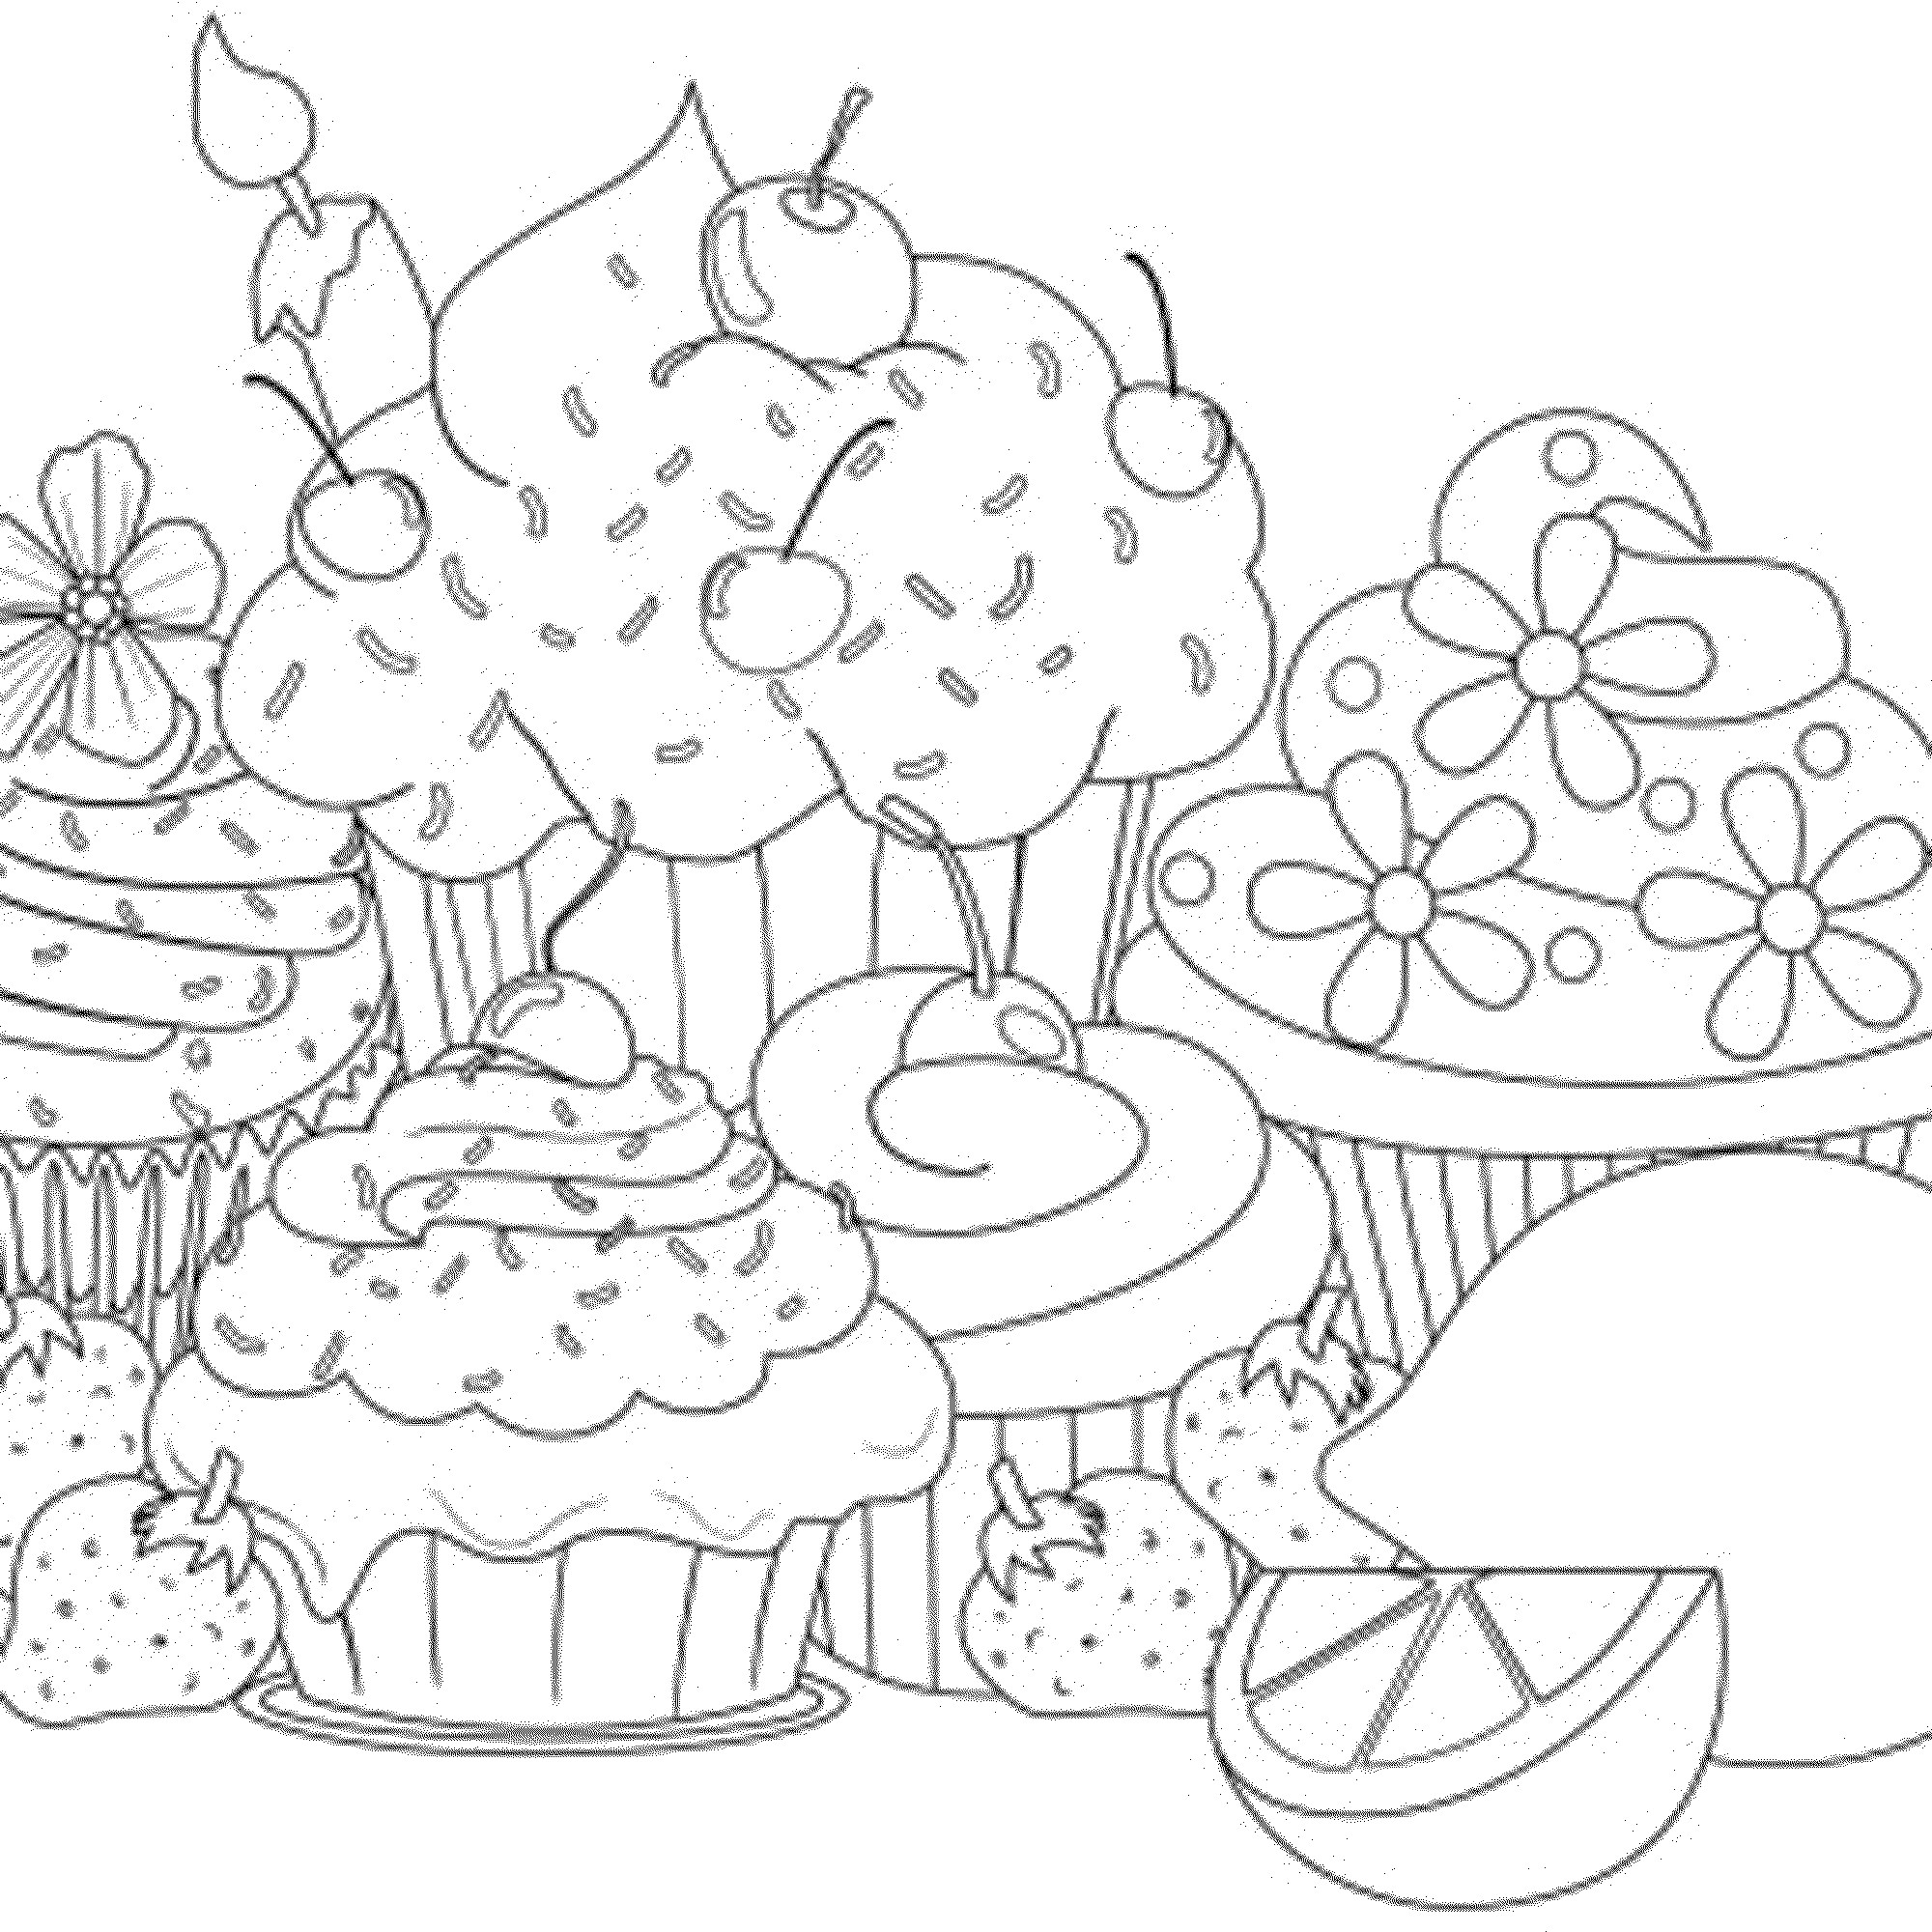 2000x2000 Cute But Hard Coloring Pages Tixac